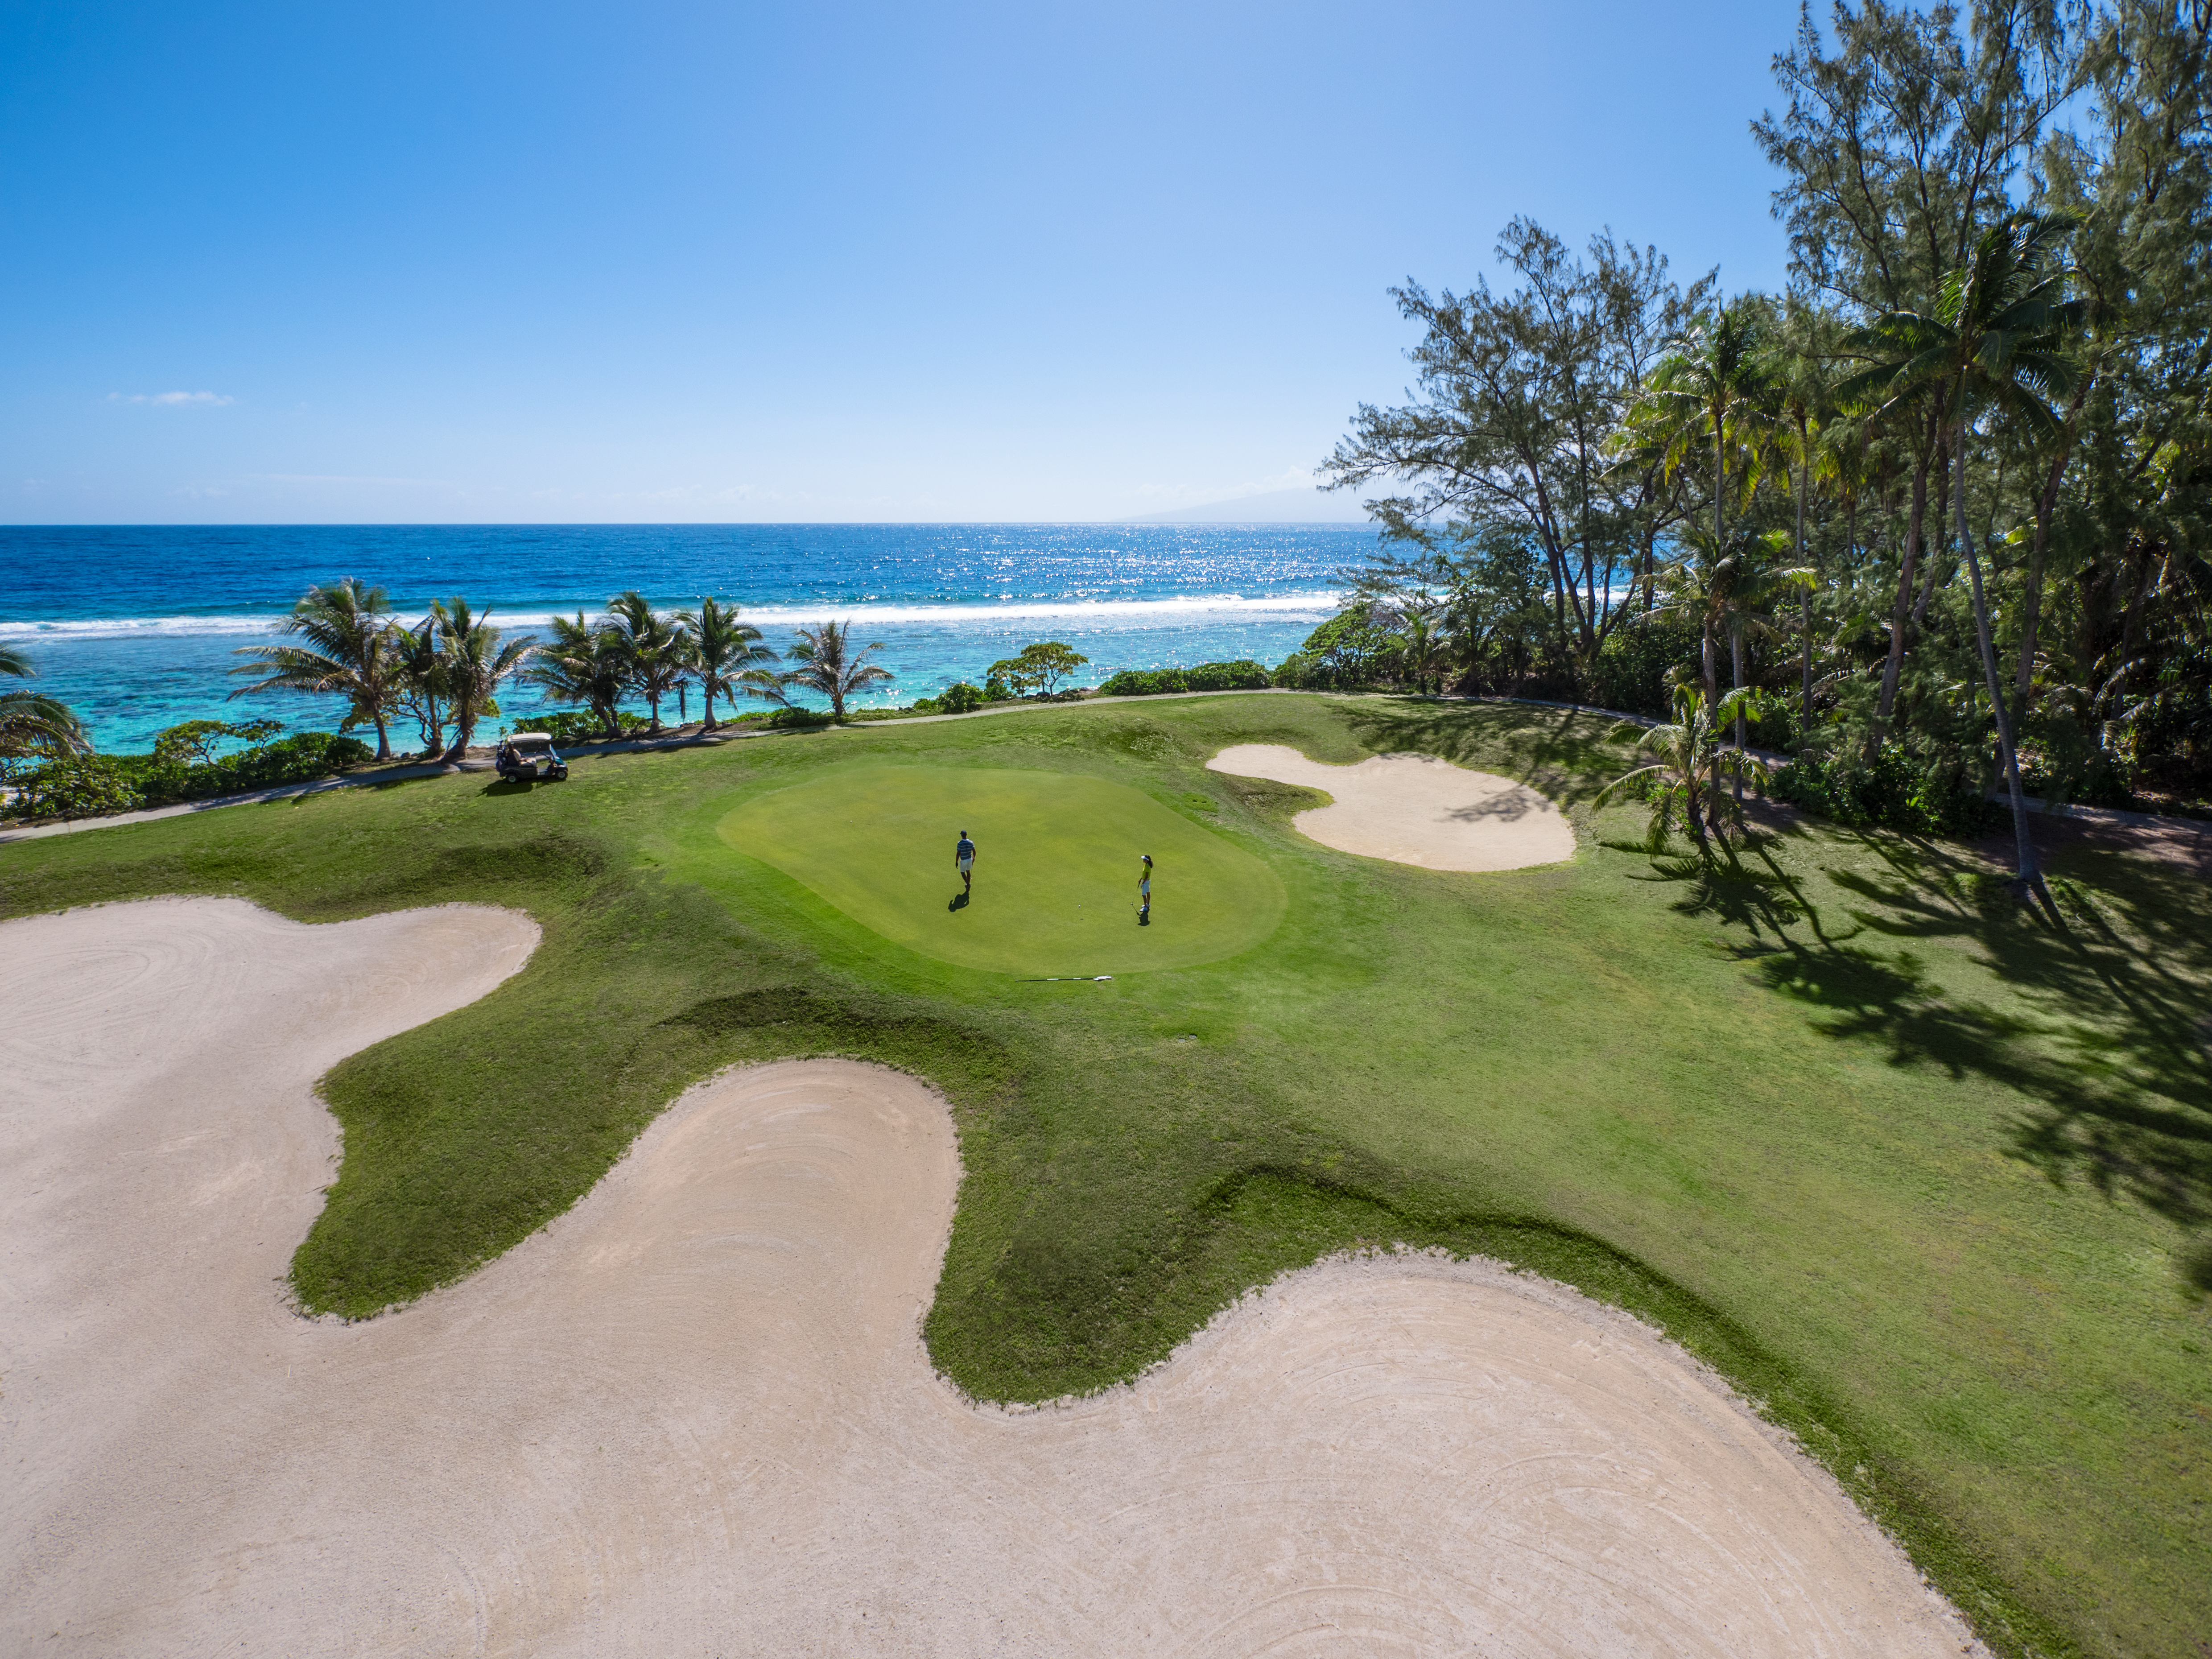 https://tahititourisme.com.br/wp-content/uploads/2017/08/ACTIVITES-TERRESTRES-Moorea-Green-Pearl-Golf-1.jpg